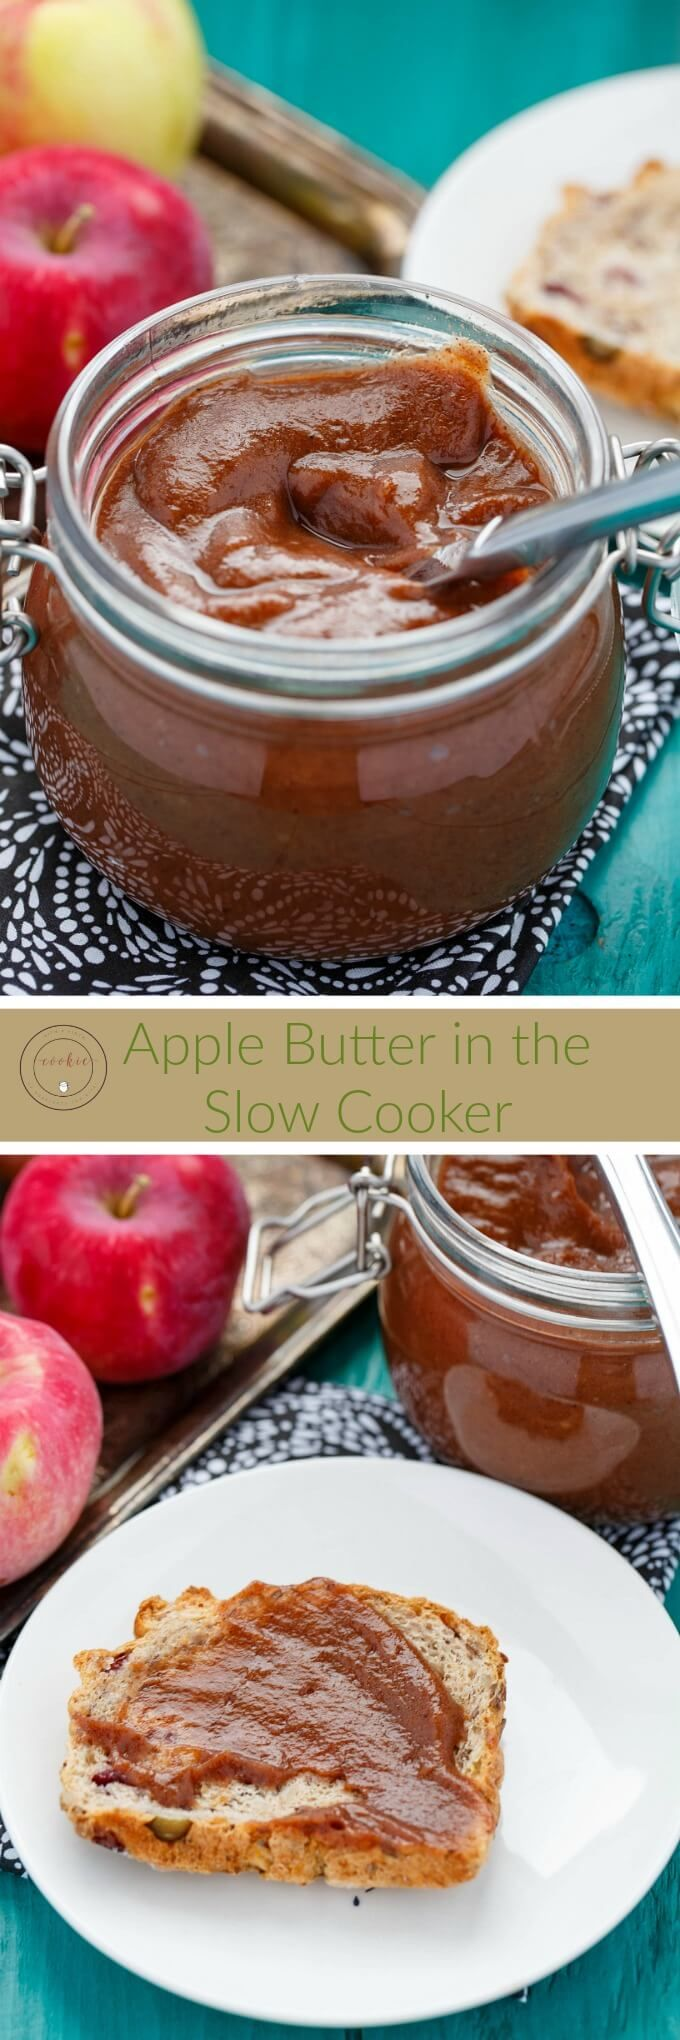 Apple Butter in the Slow Cooker | http://thecookiewriter.com | @thecookiewriter | #slowcooker | Homemade apple butter in the slow cooker is super easy and a great way to use up leftover apples! Comple (Apple Butter Crock Pot)